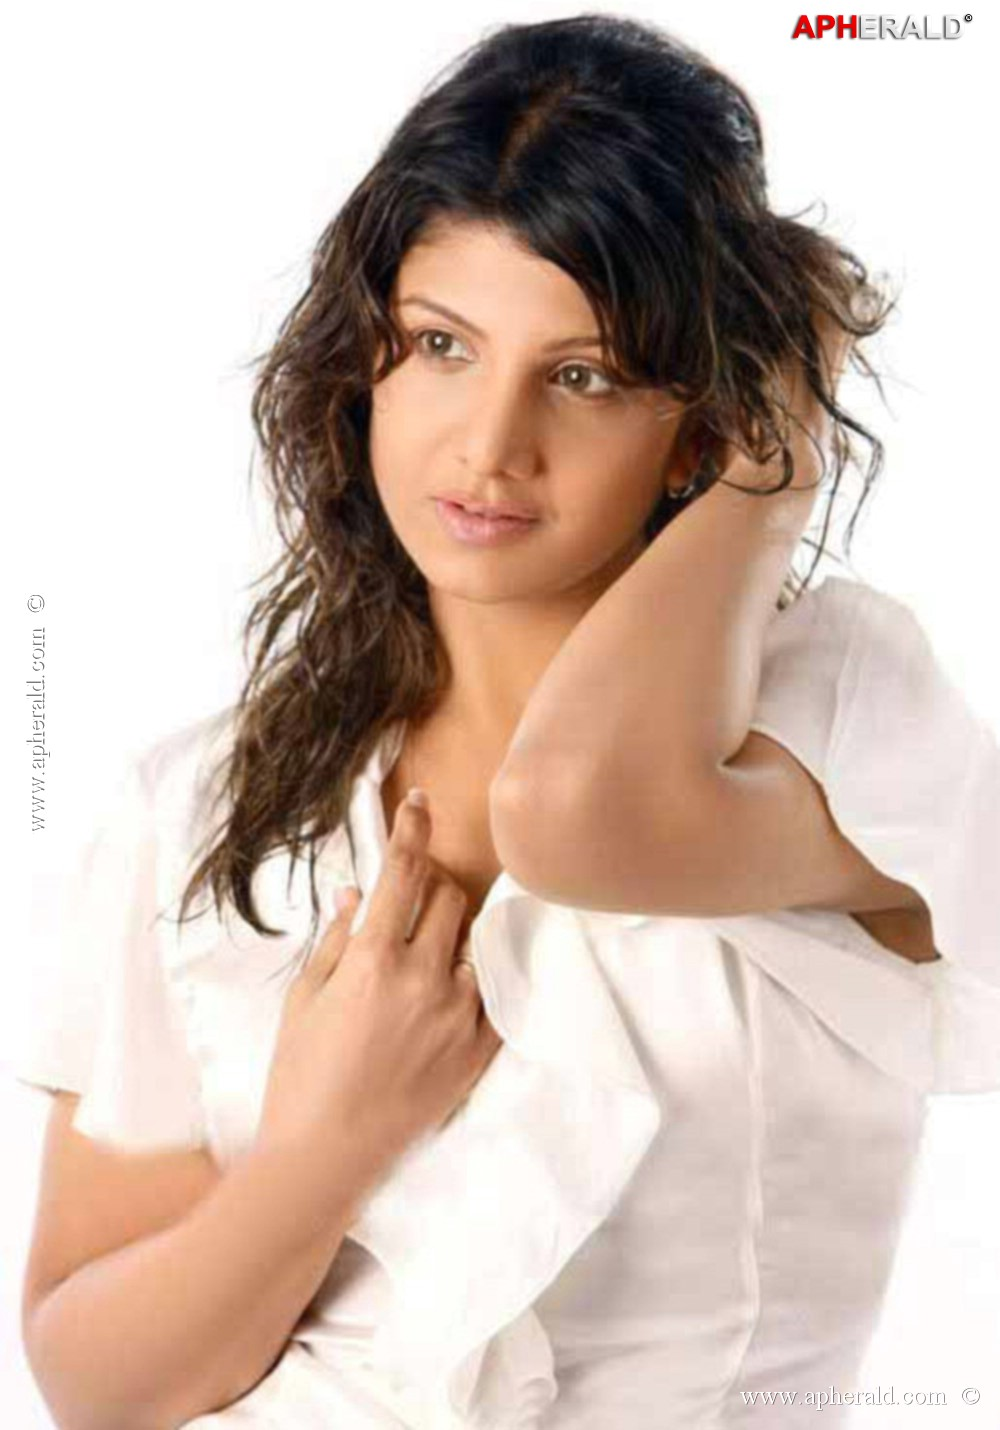 rambha-in-adult-nude-same-sex-couples-family-values